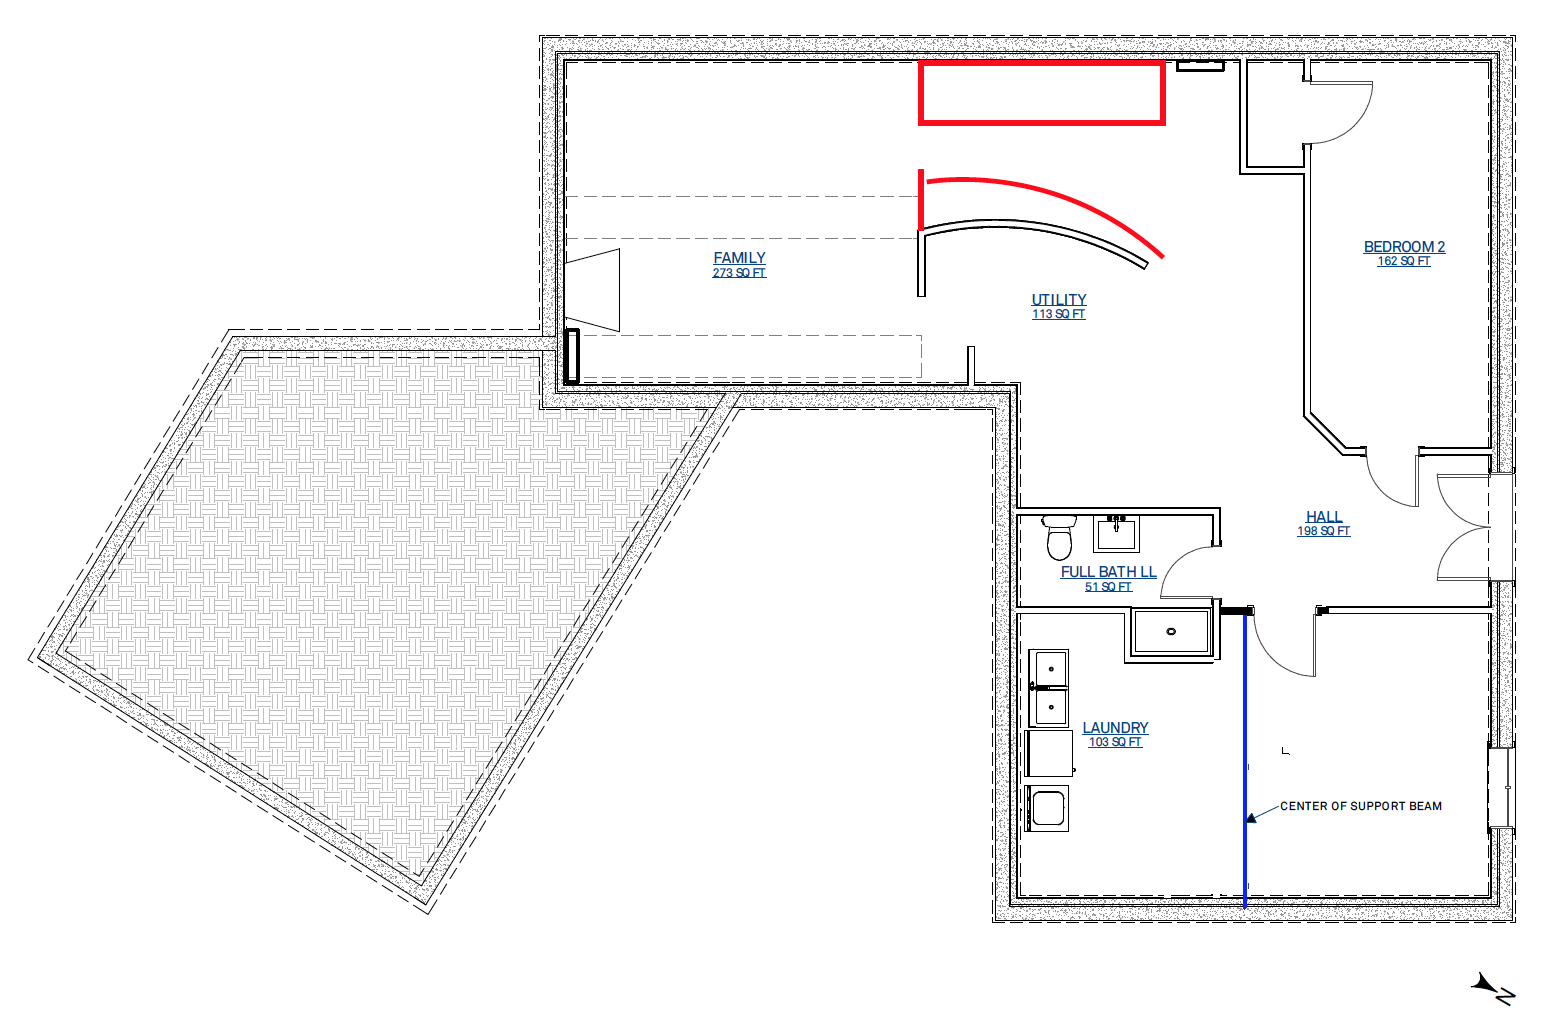 Lower level original floorplan (red indicates removed walls, blue is added walls)